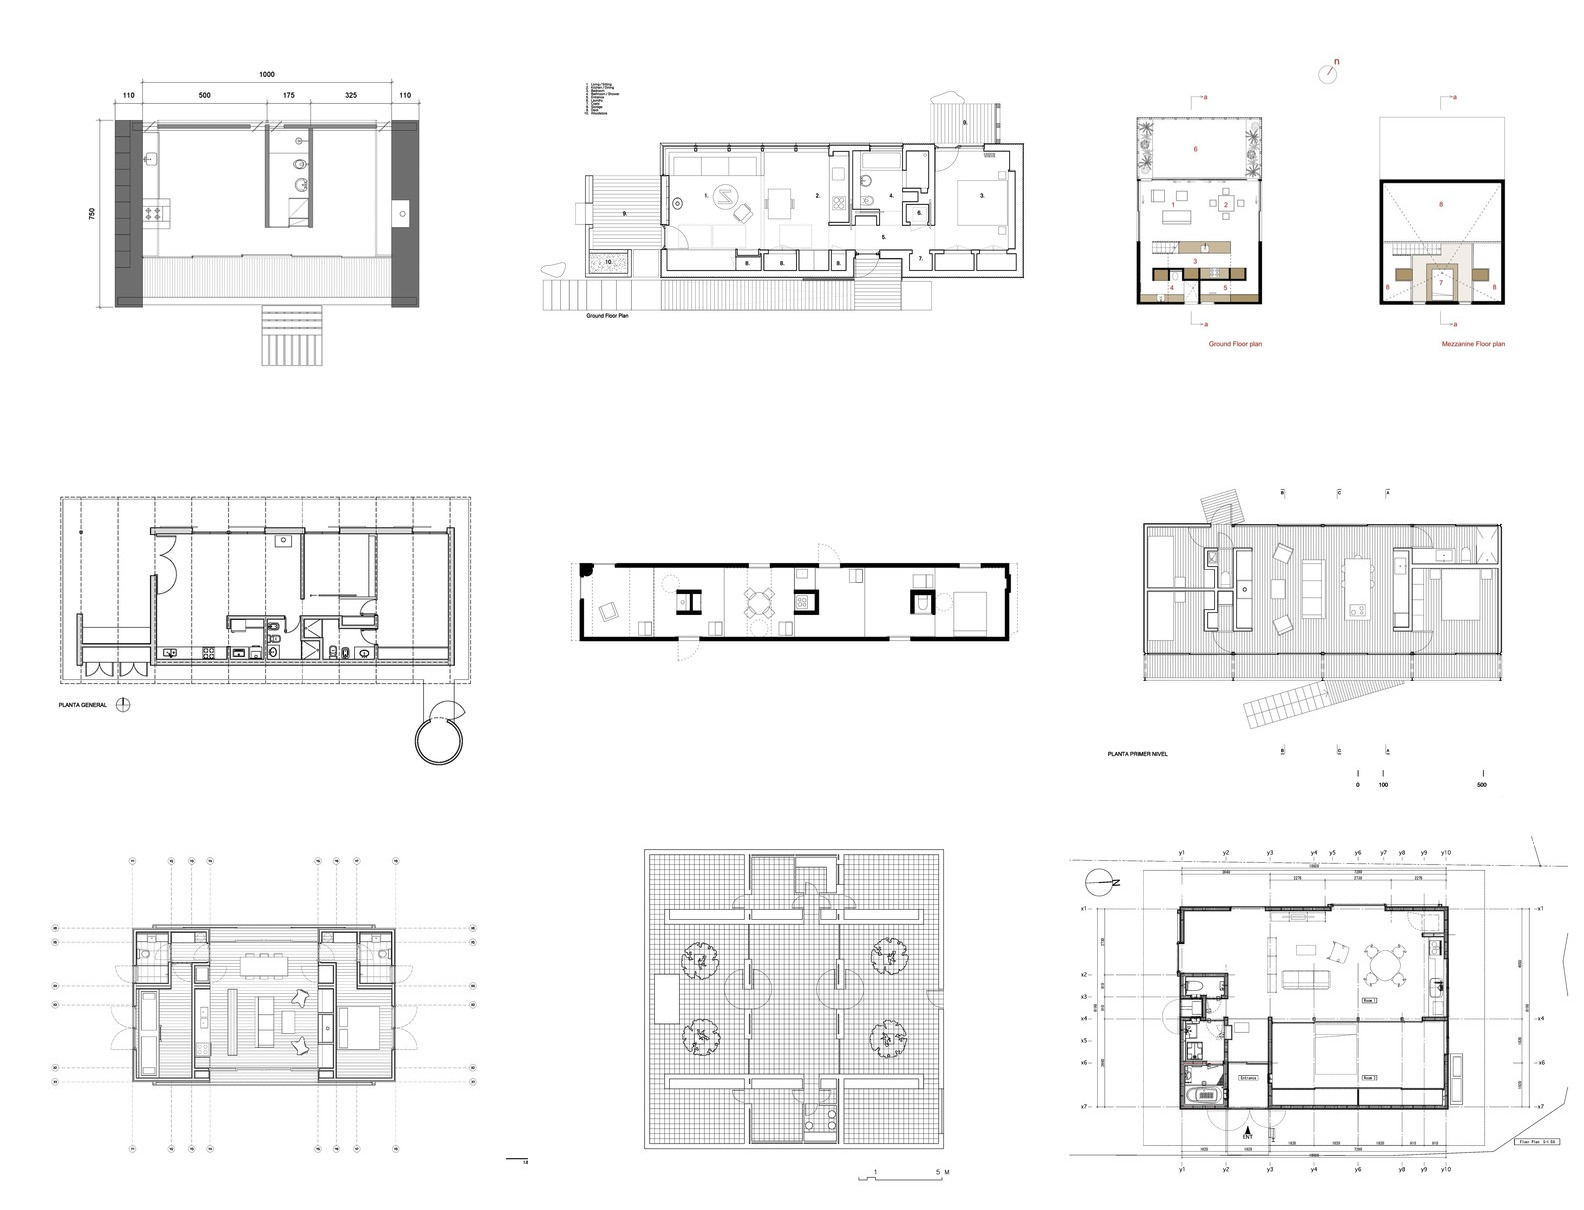 House Plans Under 100 Square Meters: 30 Useful Examples ... on